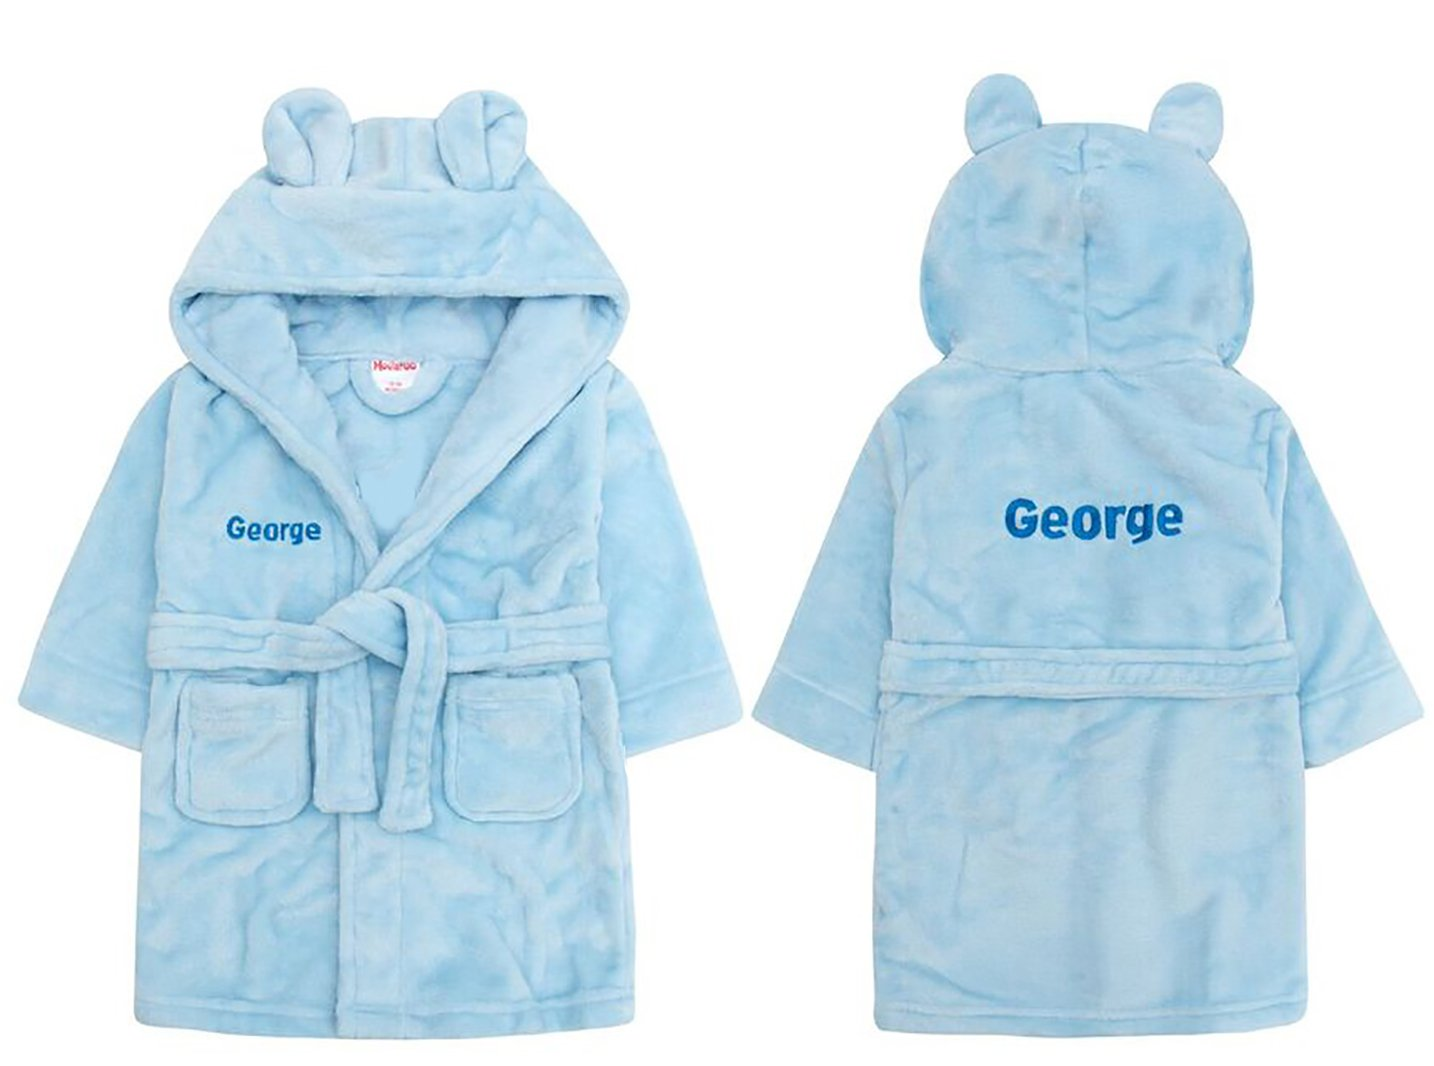 c3287c3437 Embroidered Personalised Soft Baby Blue Dressing Gown Bath Robe with Teddy  EARS 6 Months-5 Years